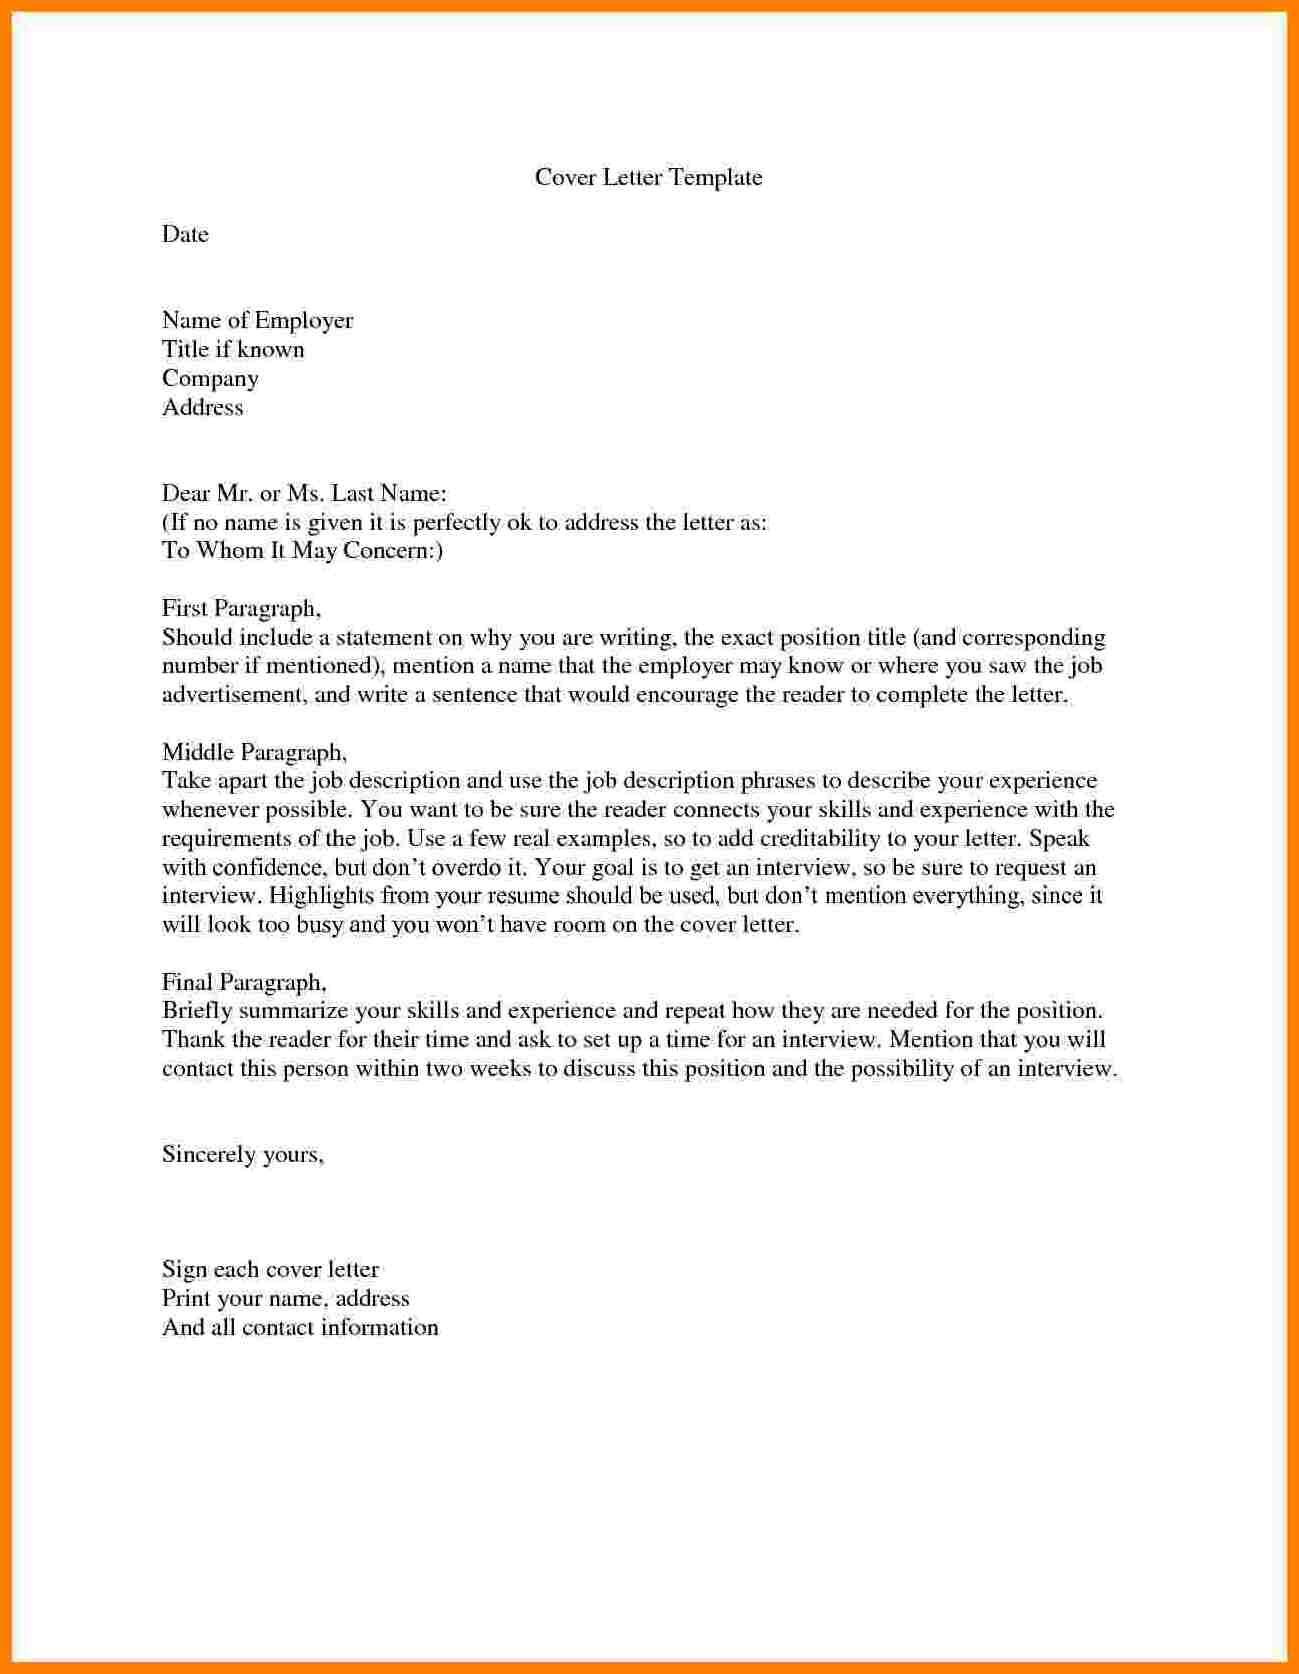 30 Addressing A Cover Letter Format Unknown Recipient Fiustk